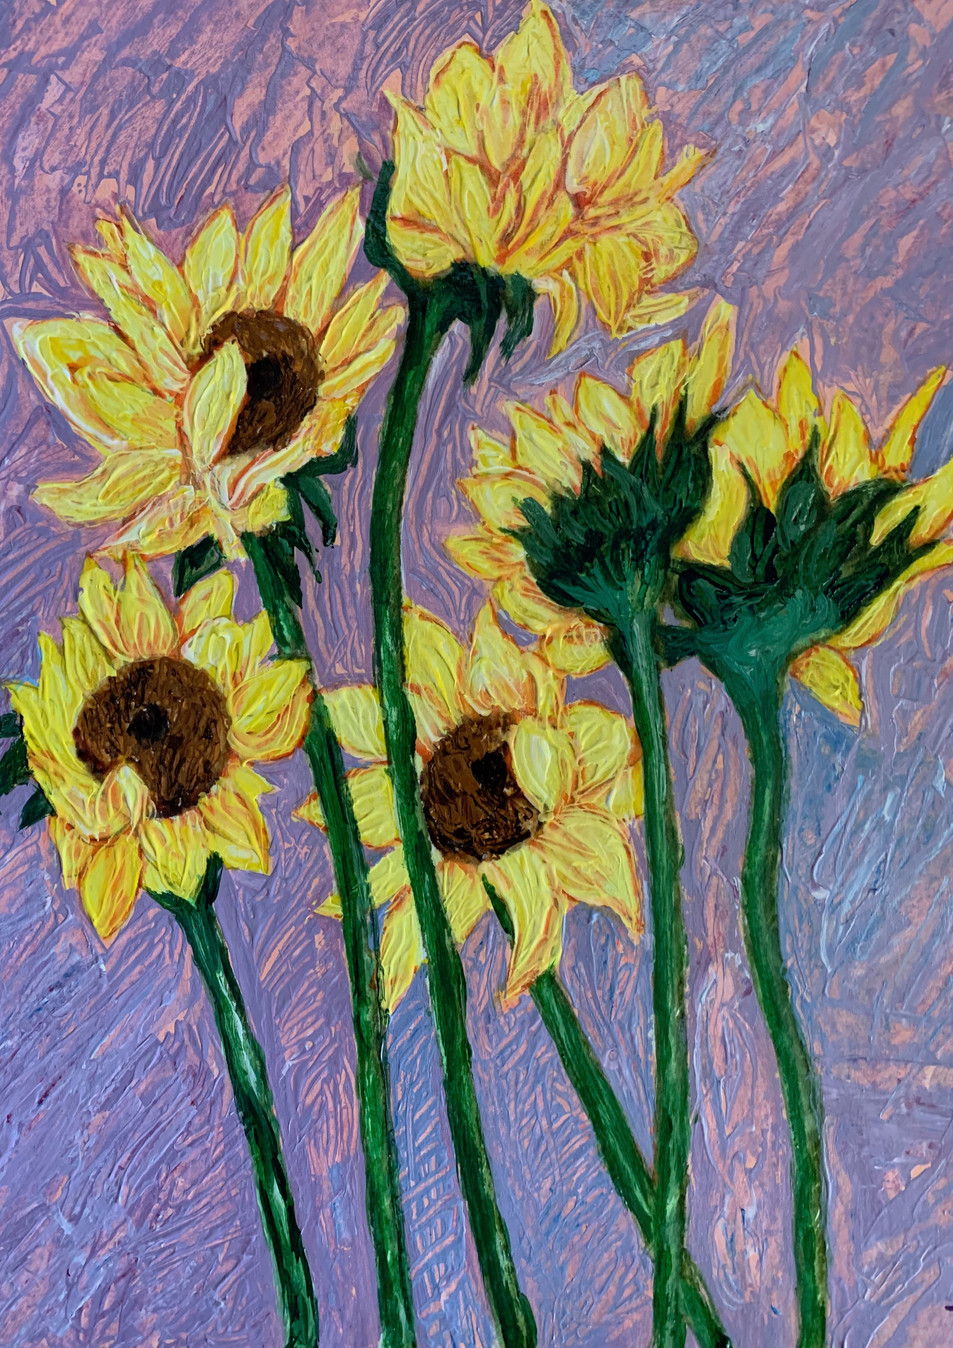 Paula's Sunflowers (2018), Acrylic on paper, 11x14